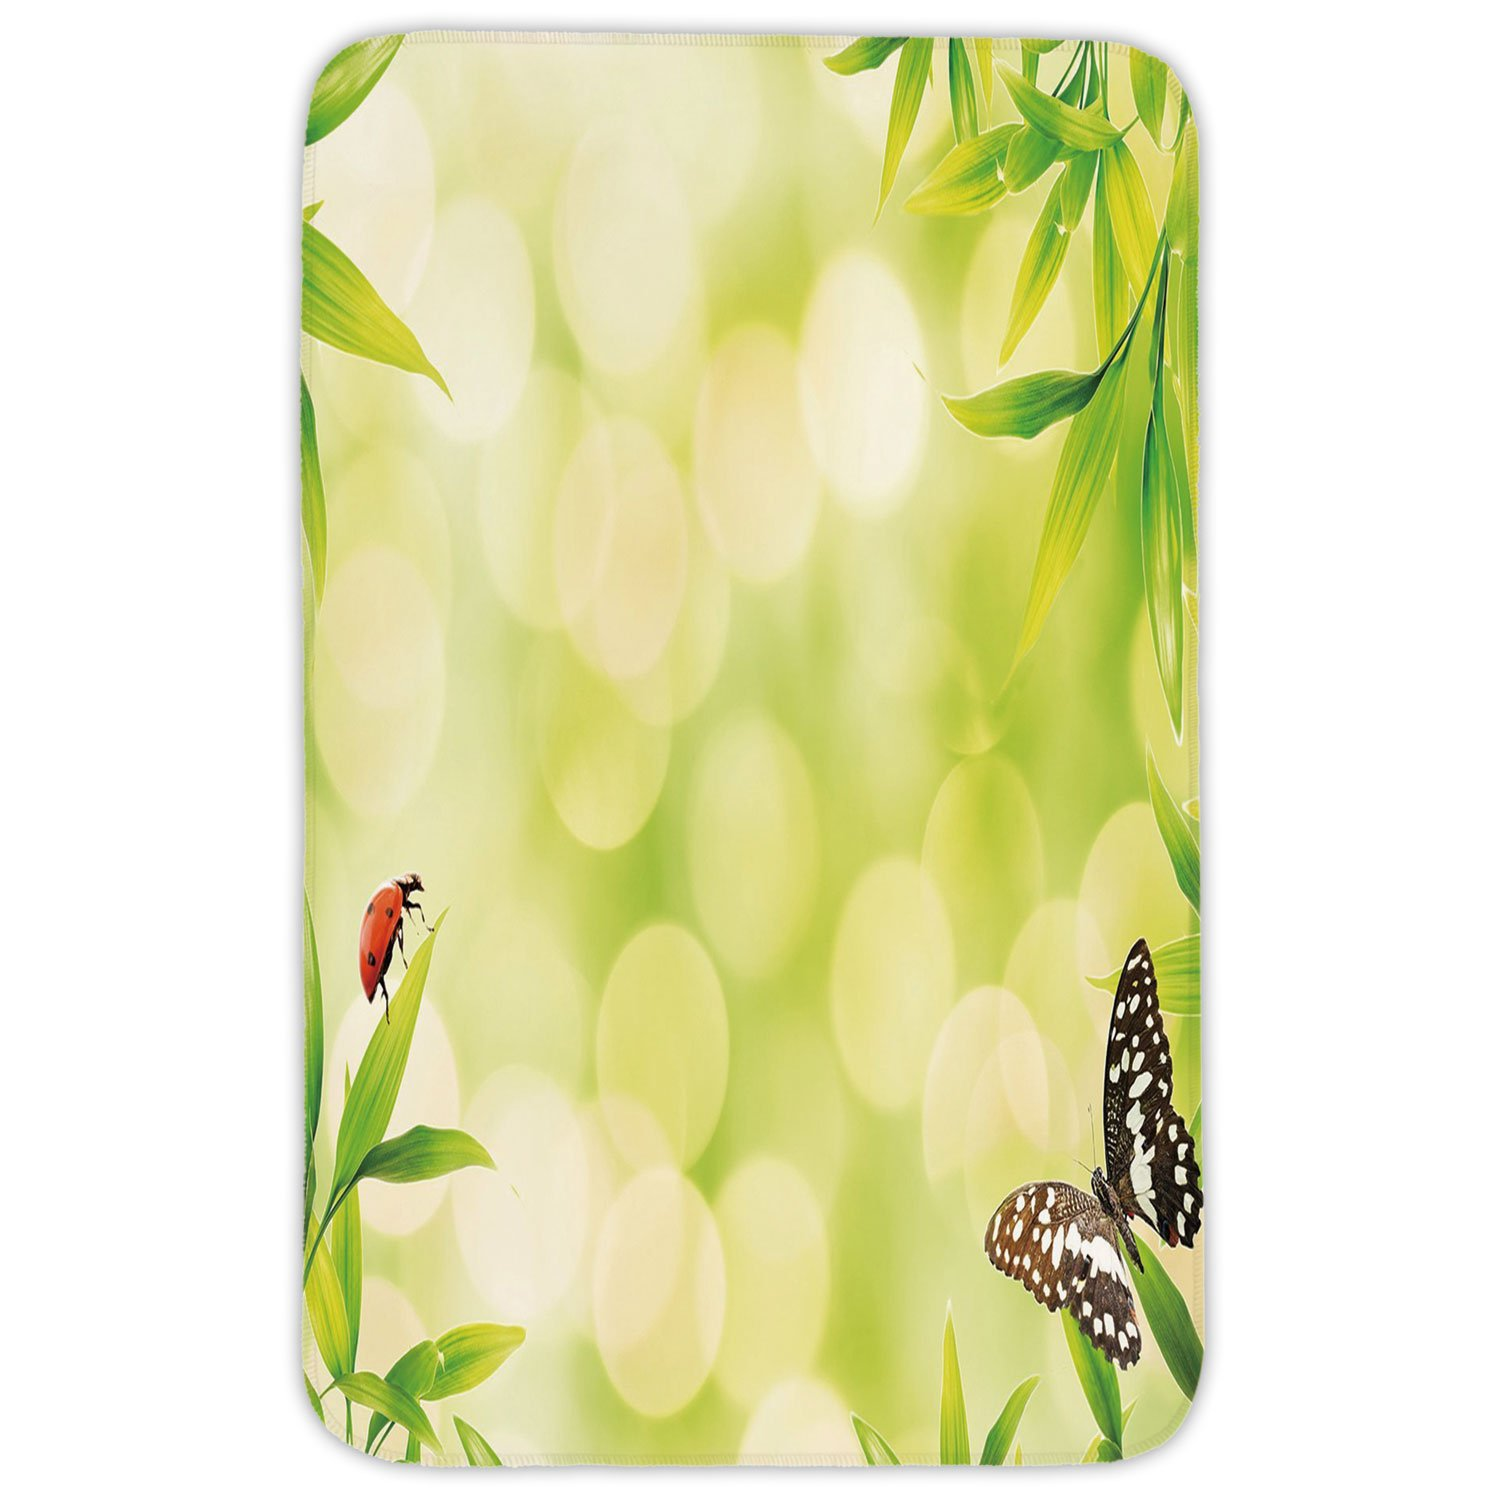 Rectangular Area Rug Mat Rug,Plant,Ladybug and a Butterfly Standing on a Bamboo Leaves Bokeh Background Decorative,Light Green Multicolor,Home Decor Mat with Non Slip Backing